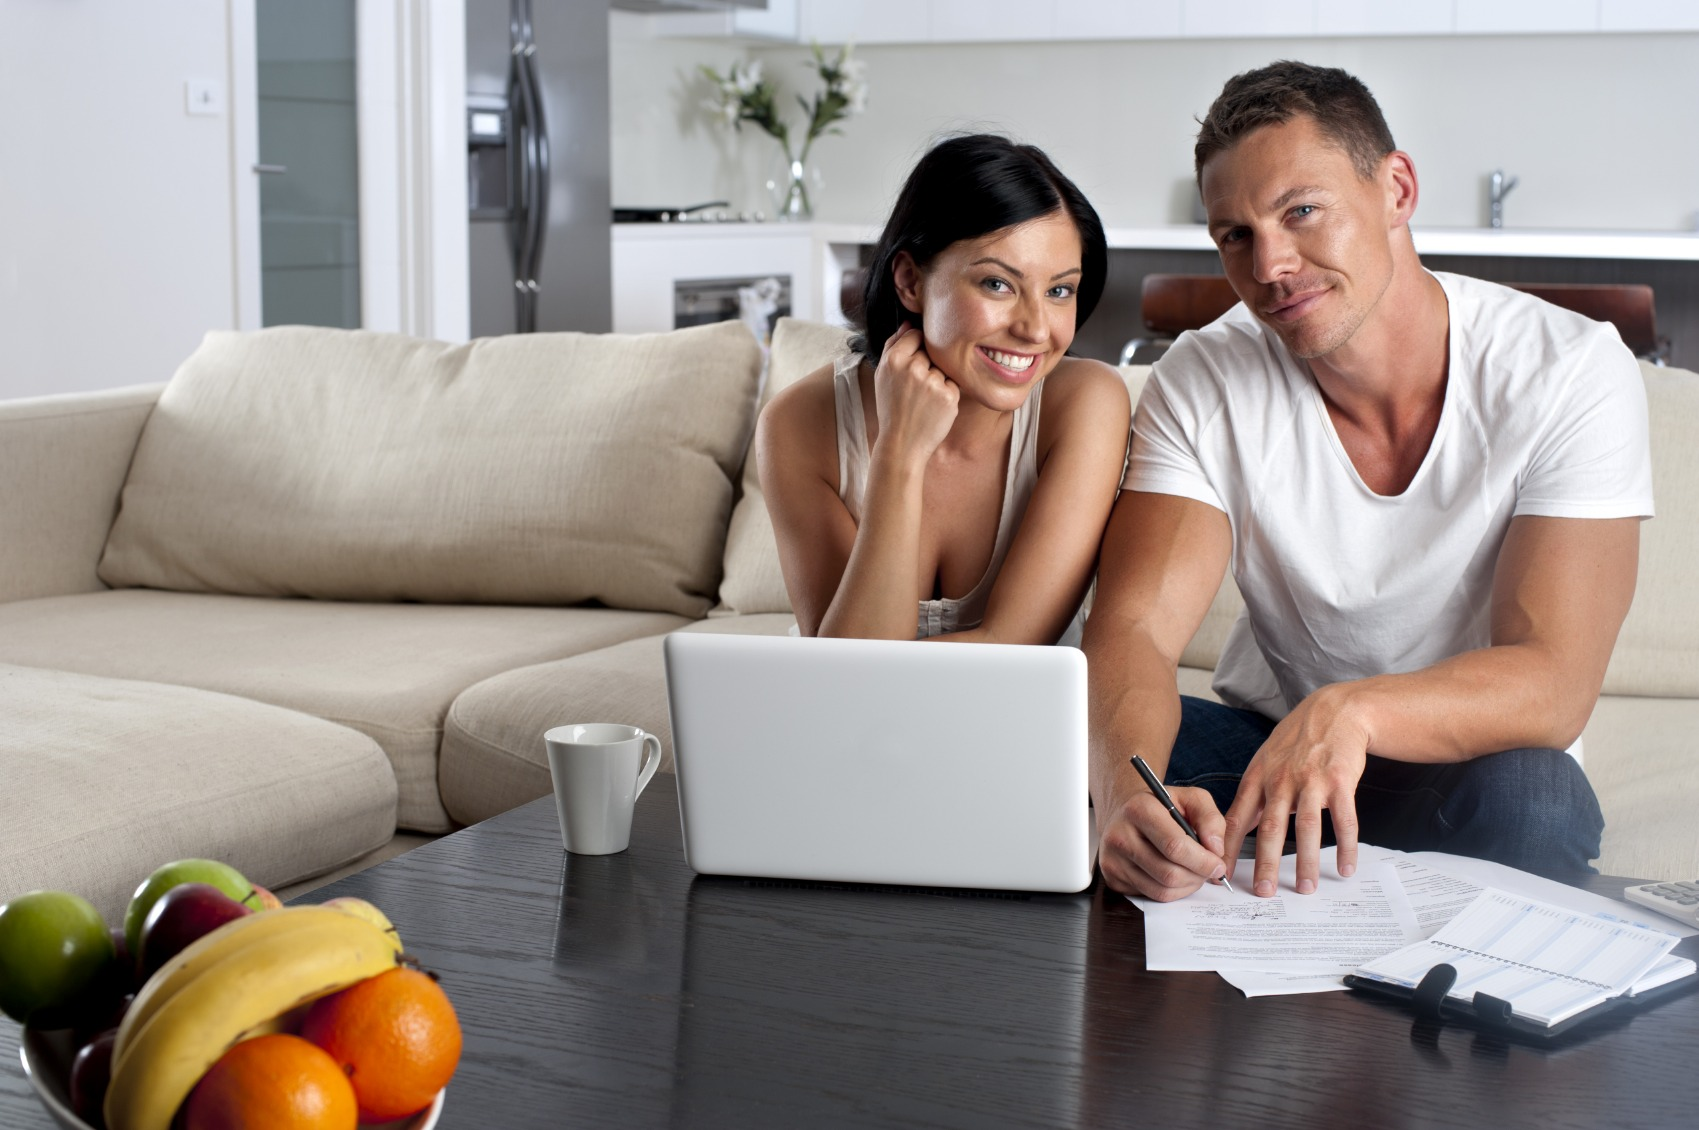 Couple doing paperwork with a laptop computer on the sofa